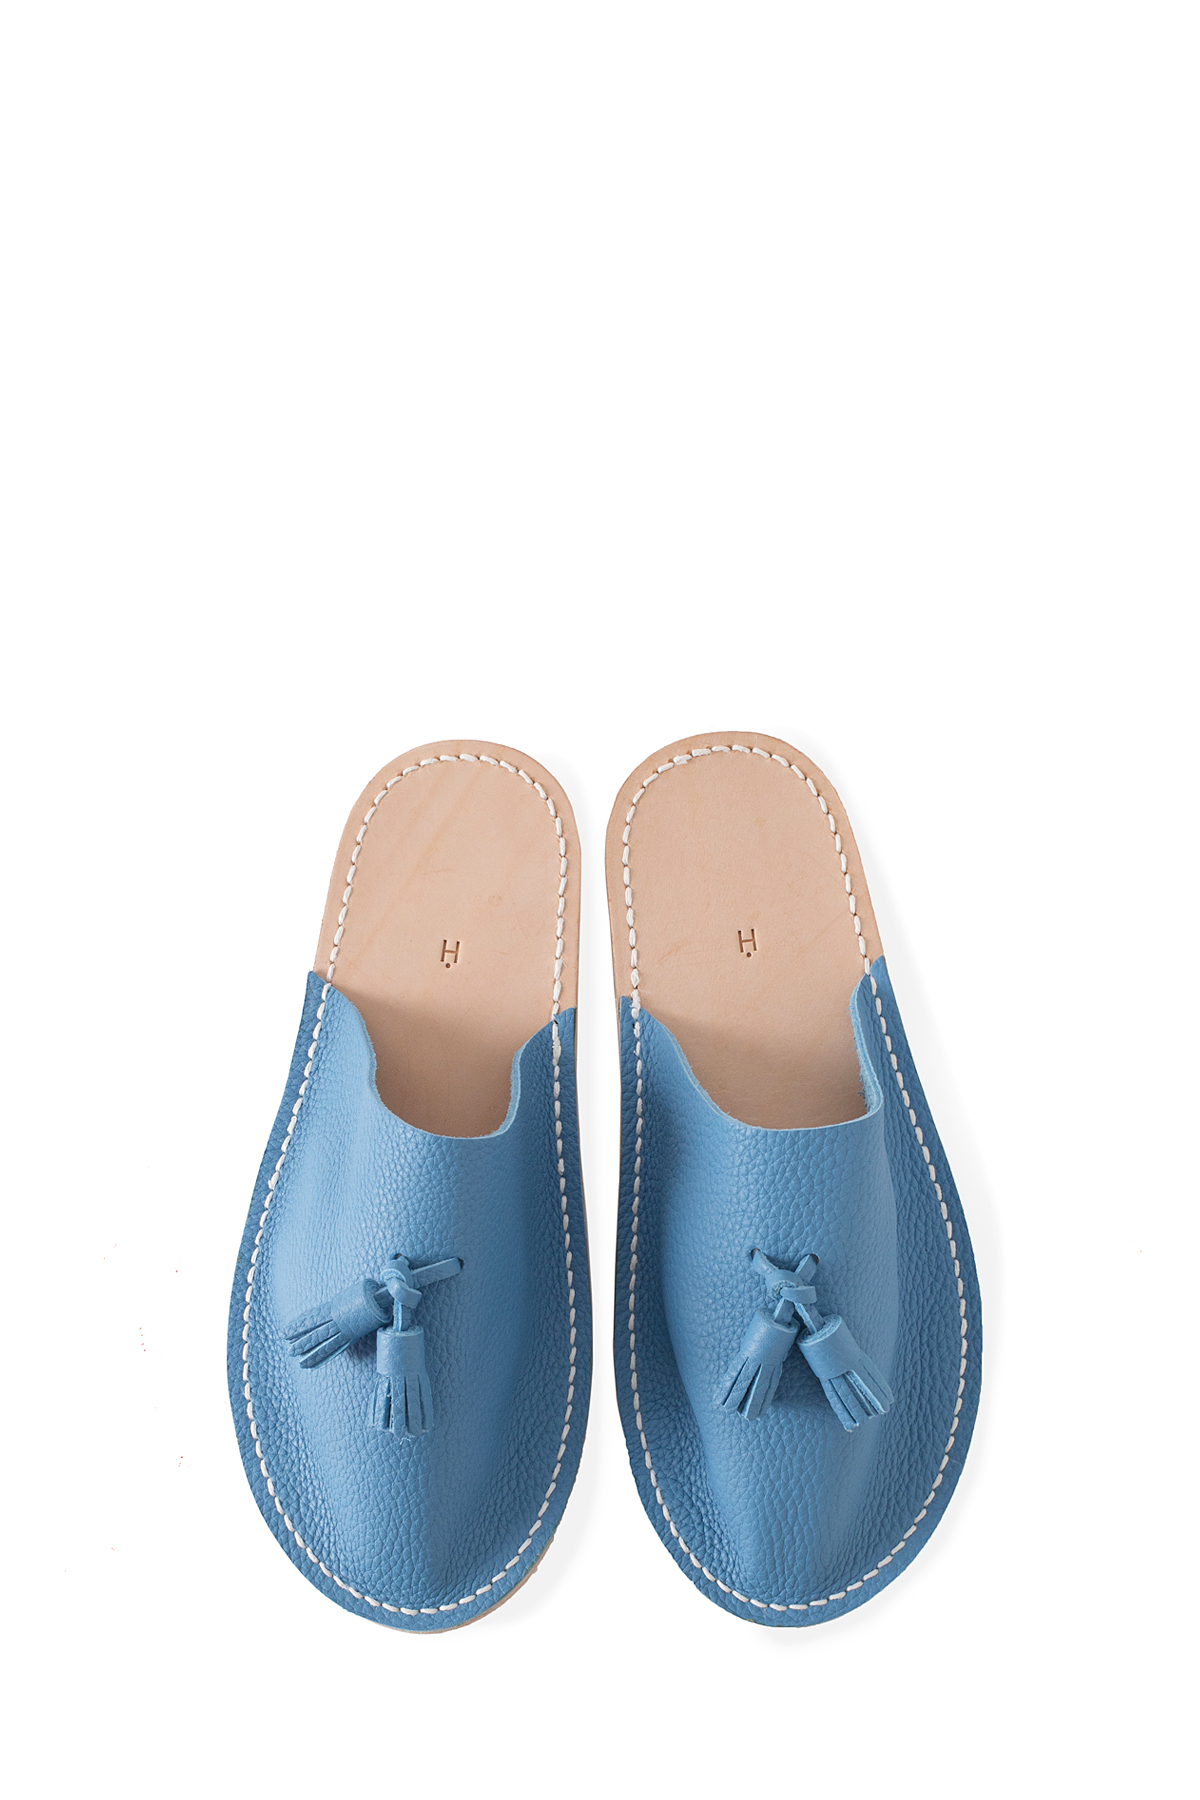 Hender Scheme : Leather Slipper (Blue)